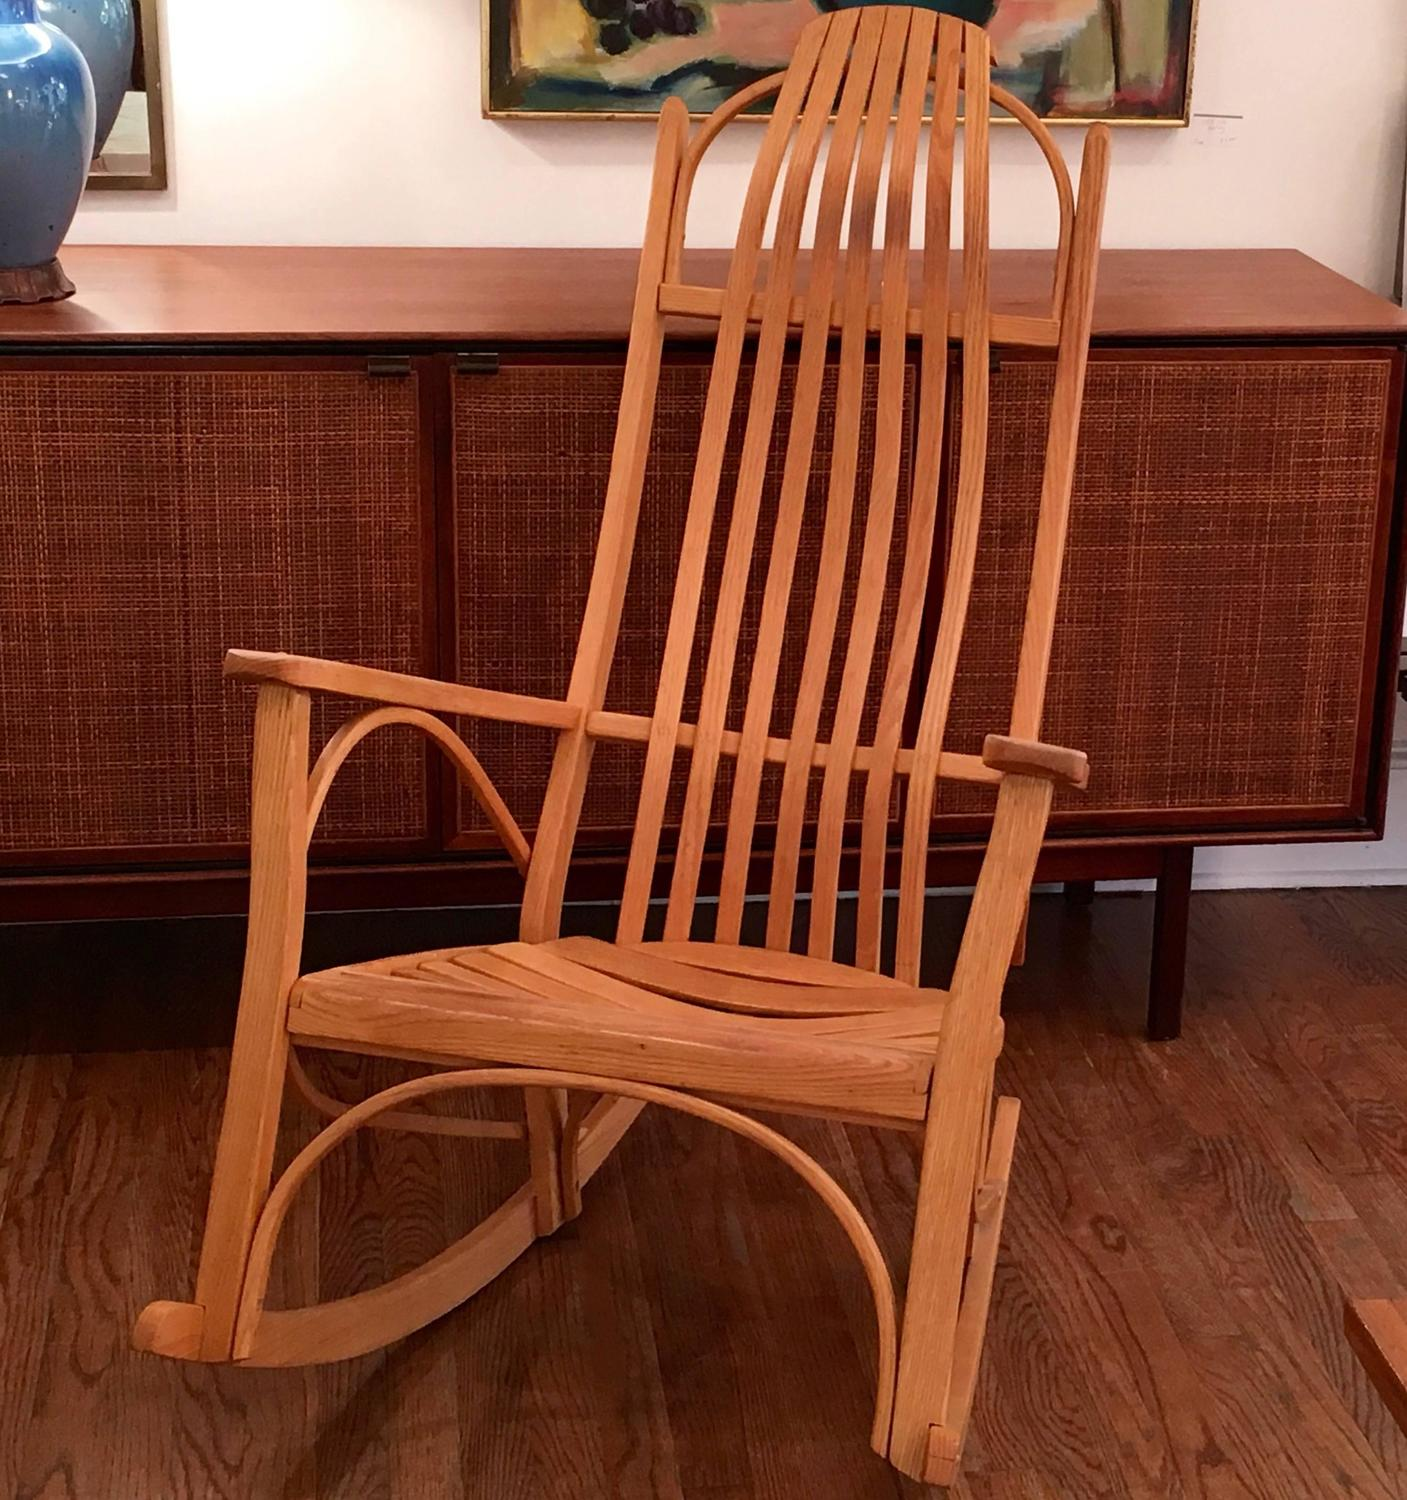 Bentwood Rocking Chair For Sale Concept Home & Interior Design